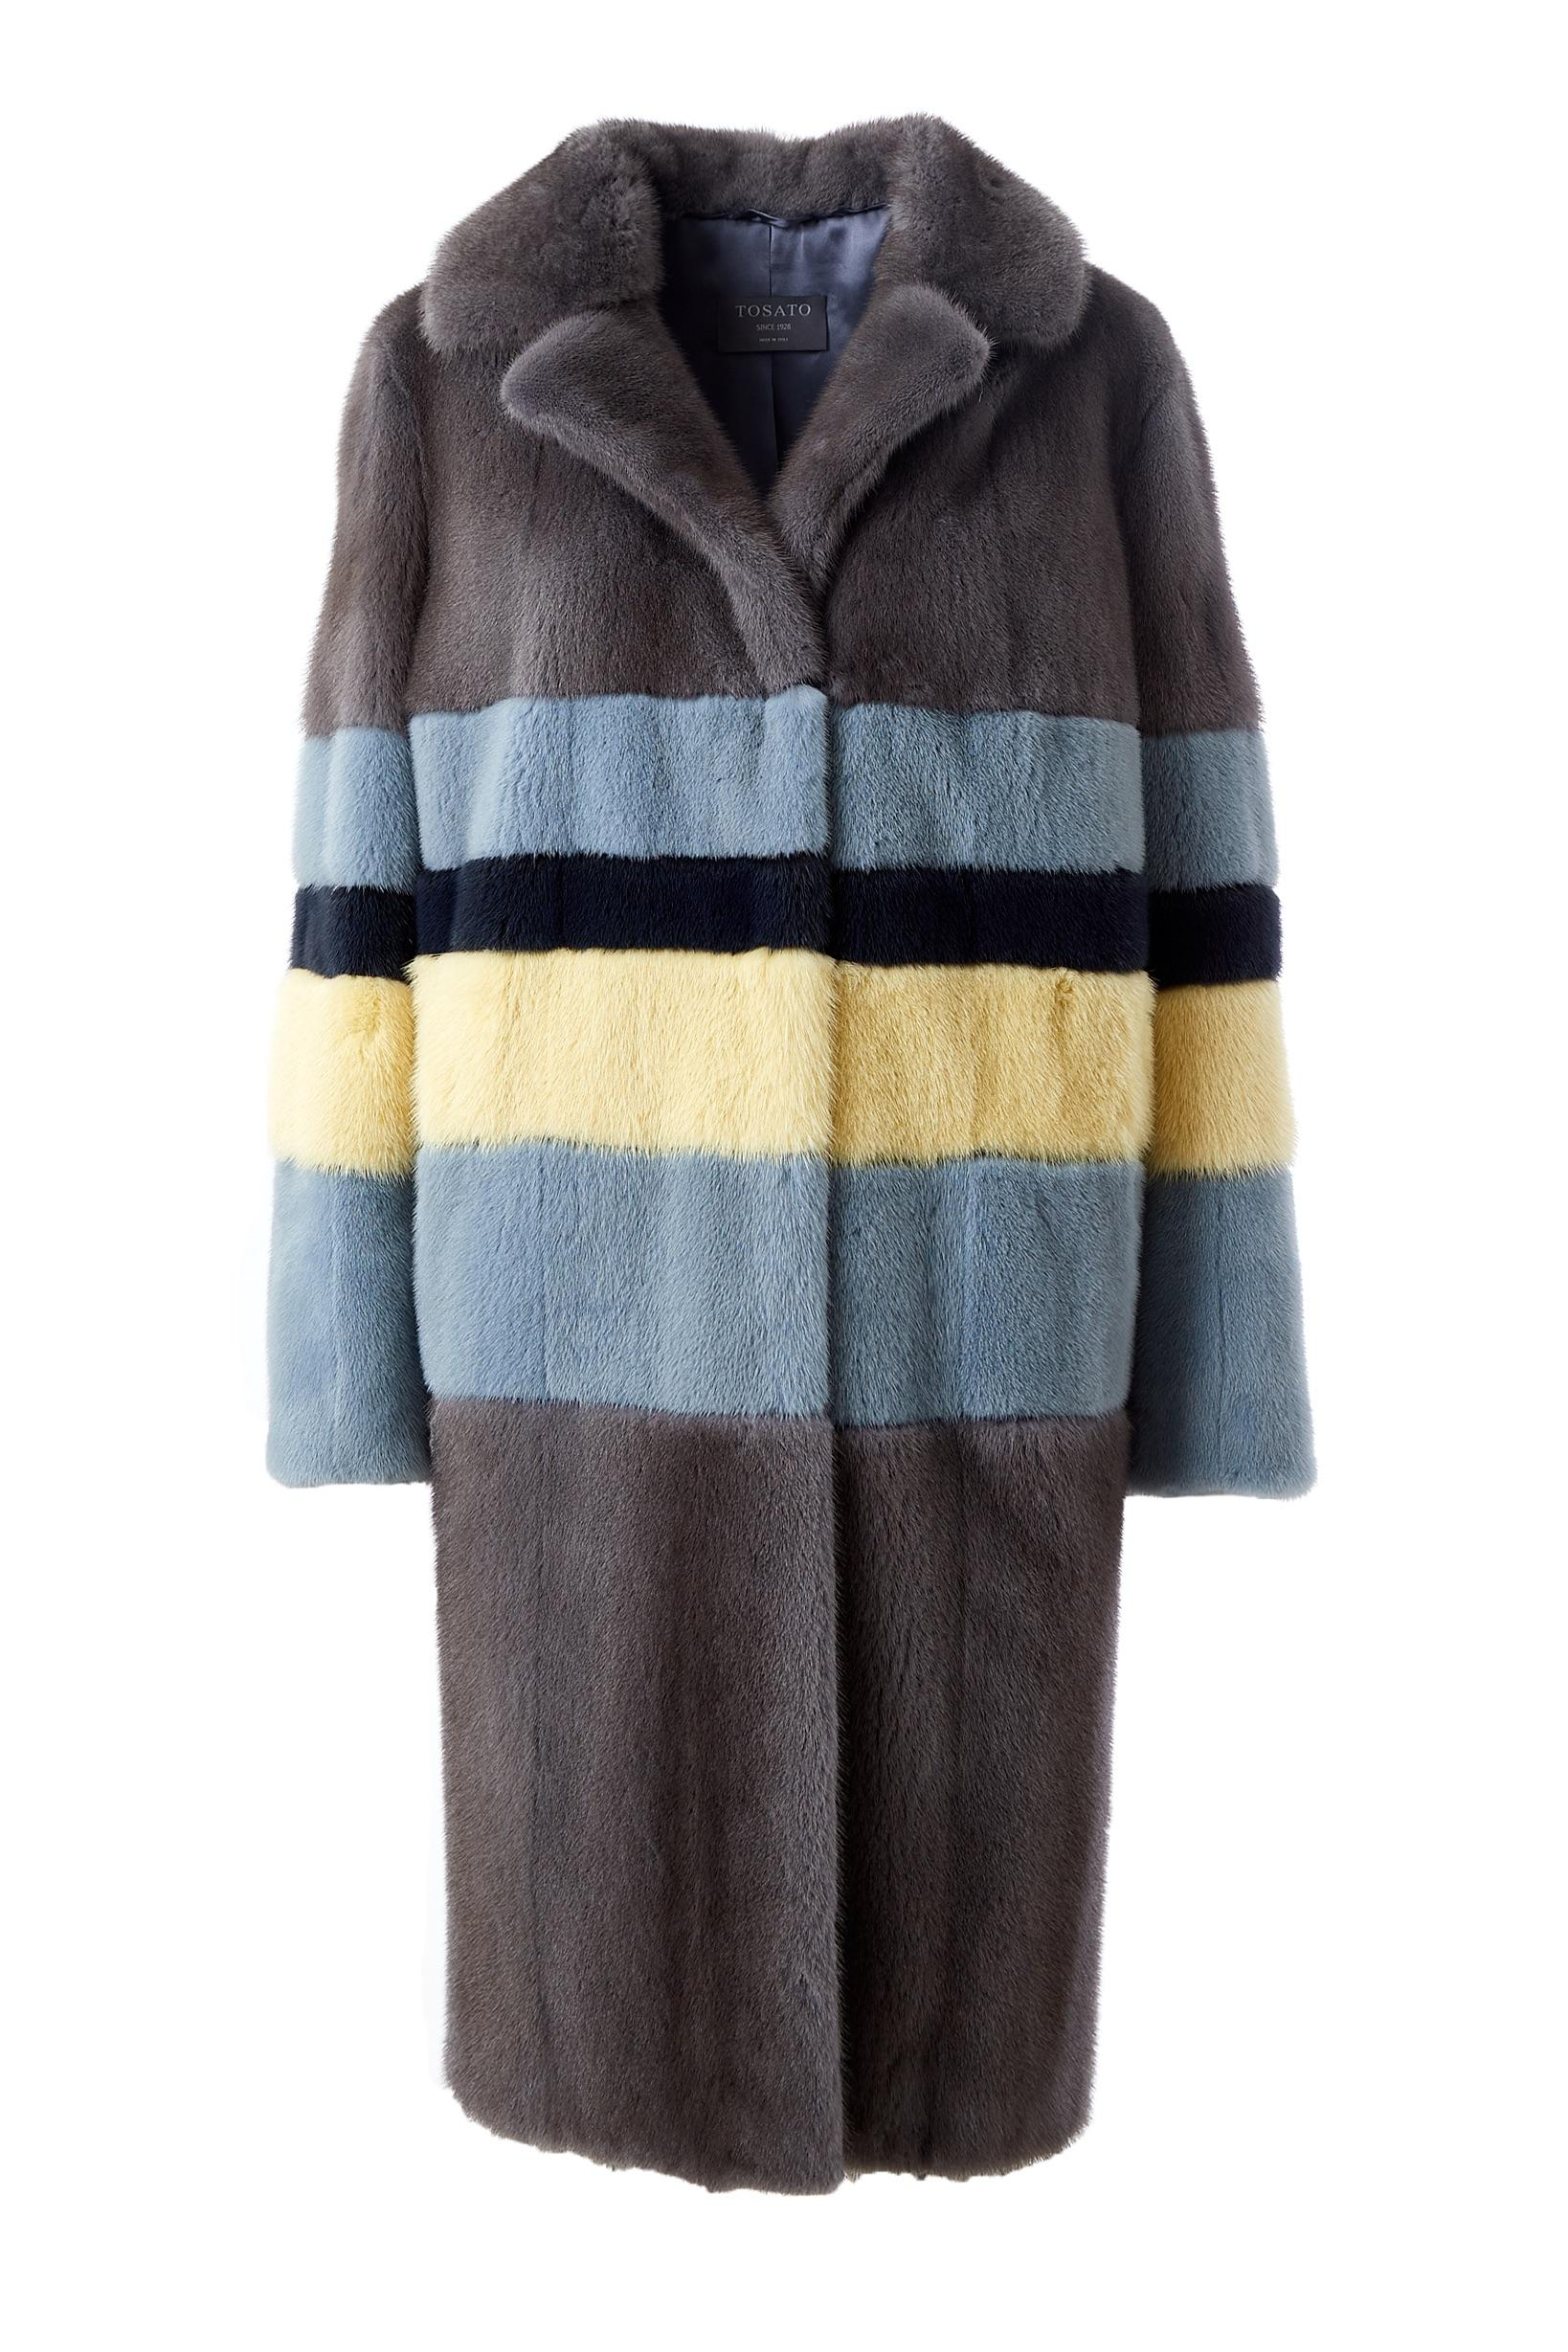 Mink coat with colorful stripes